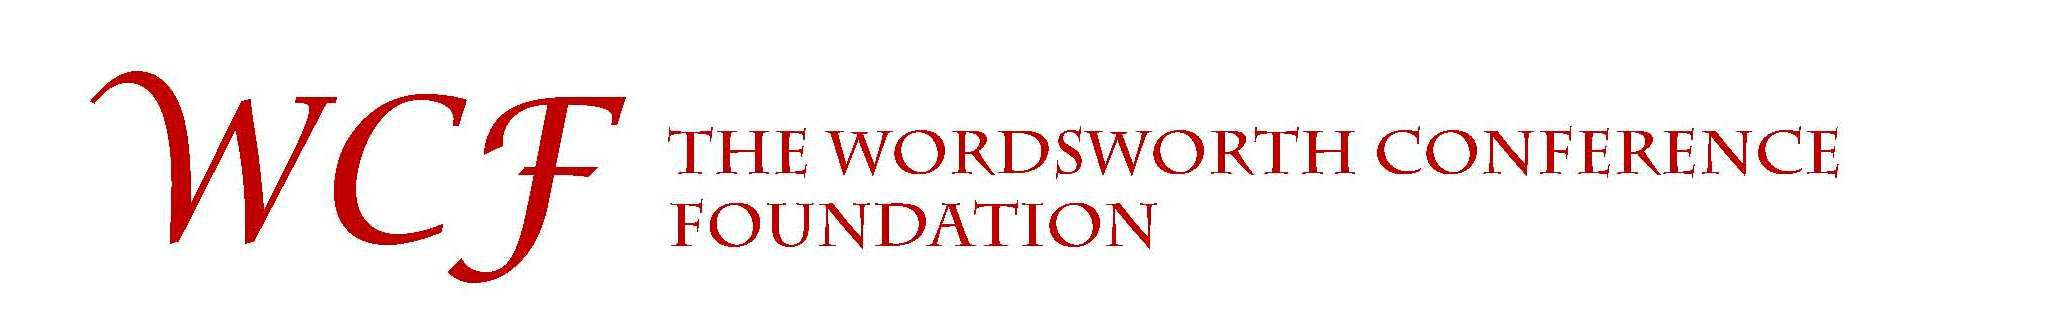 Organisers of the Wordswortth Conference & Winter School